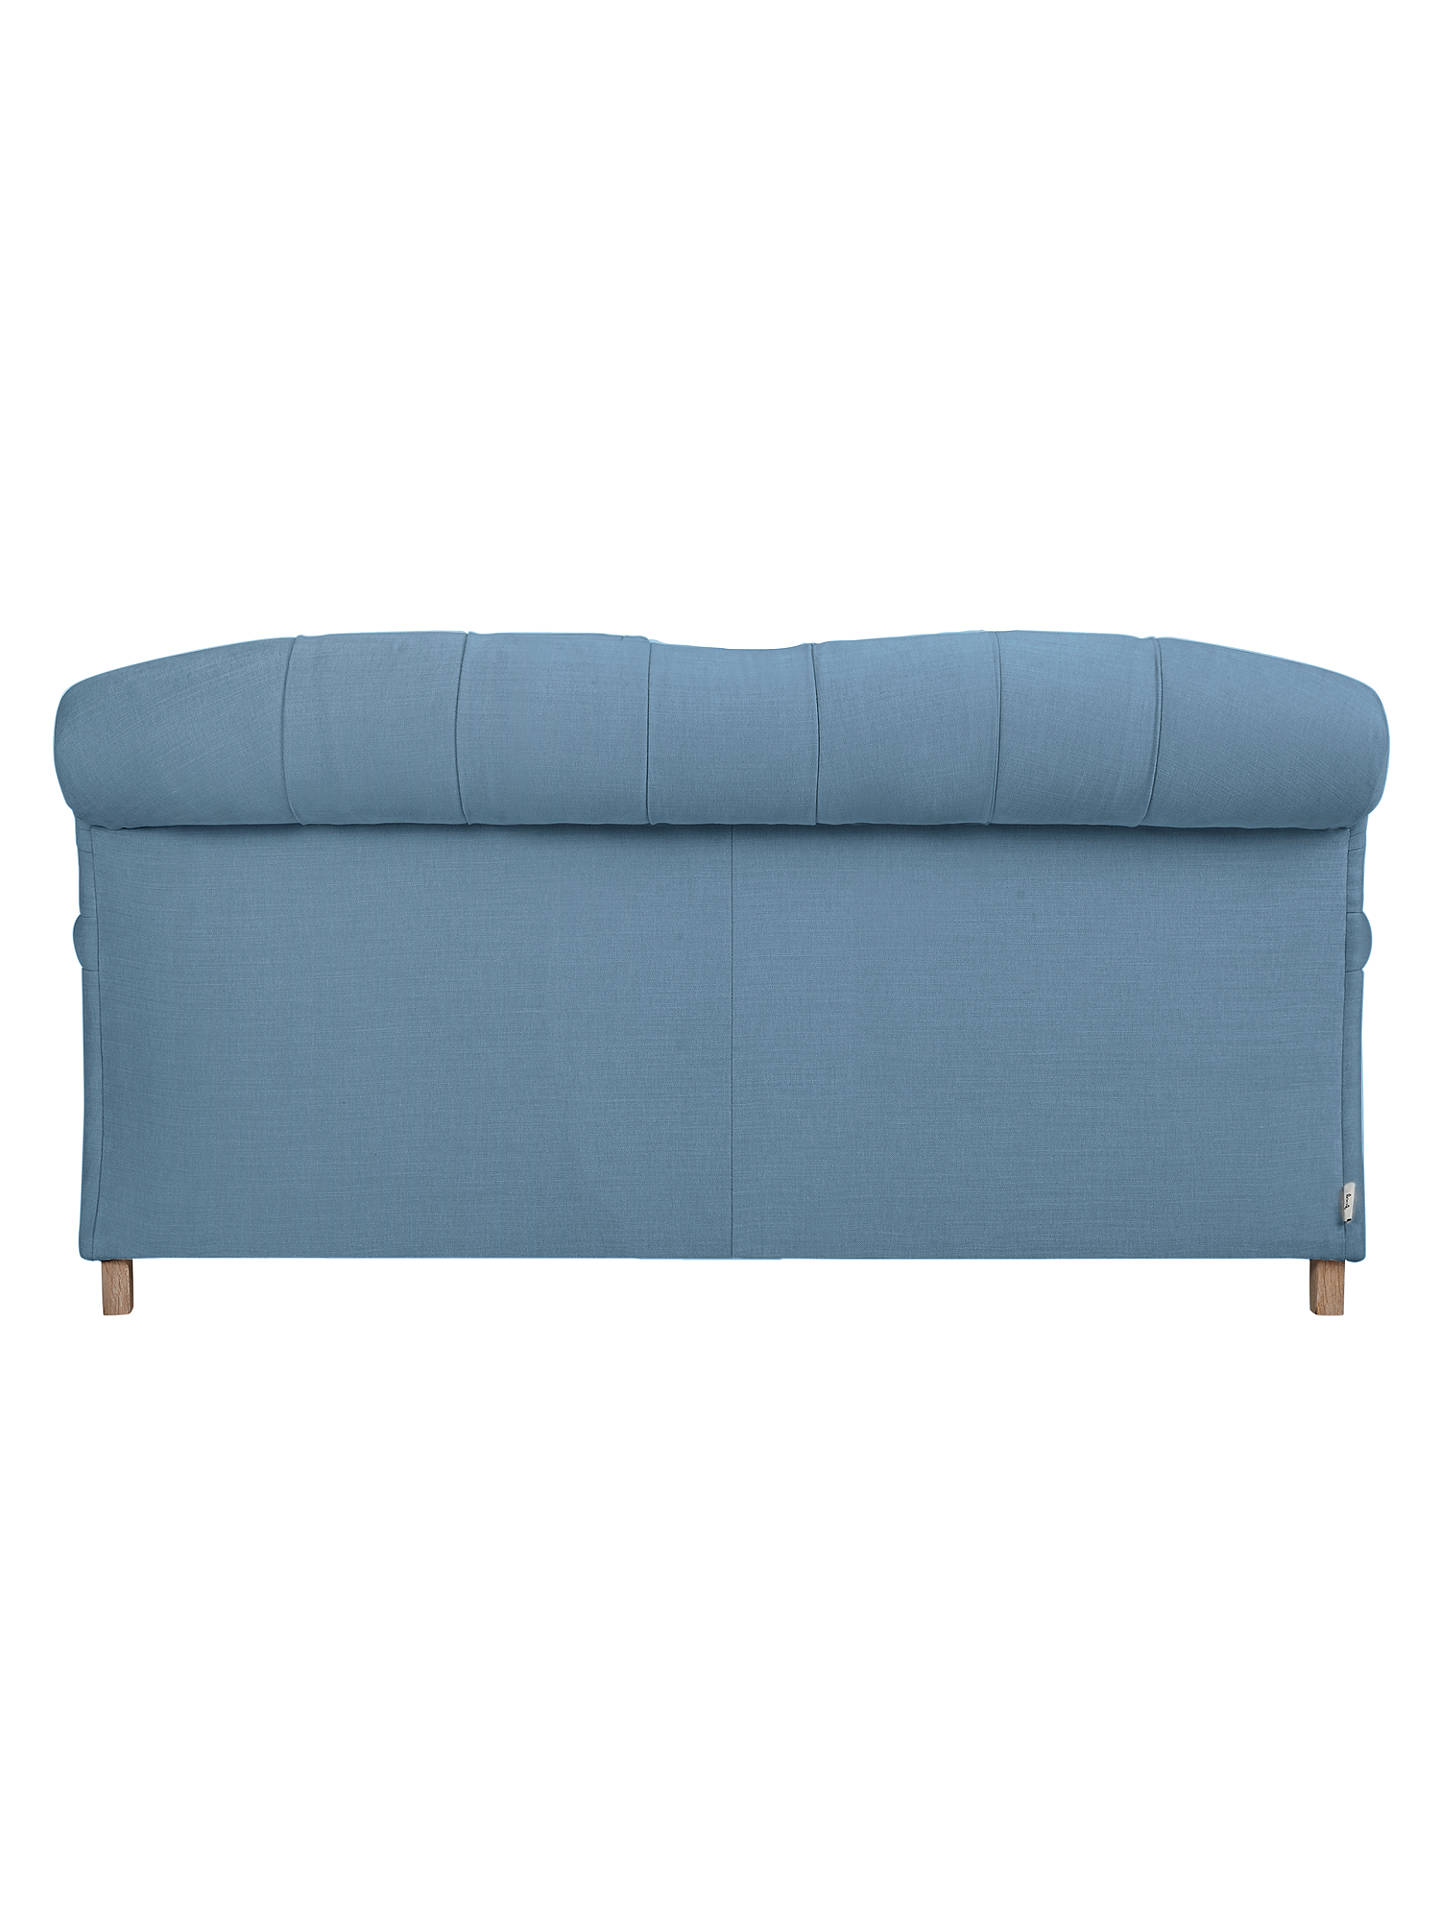 BuyCrumble Medium 2 Seater Sofa by Loaf at John Lewis, Brushed Cotton Nordic Blue Online at johnlewis.com